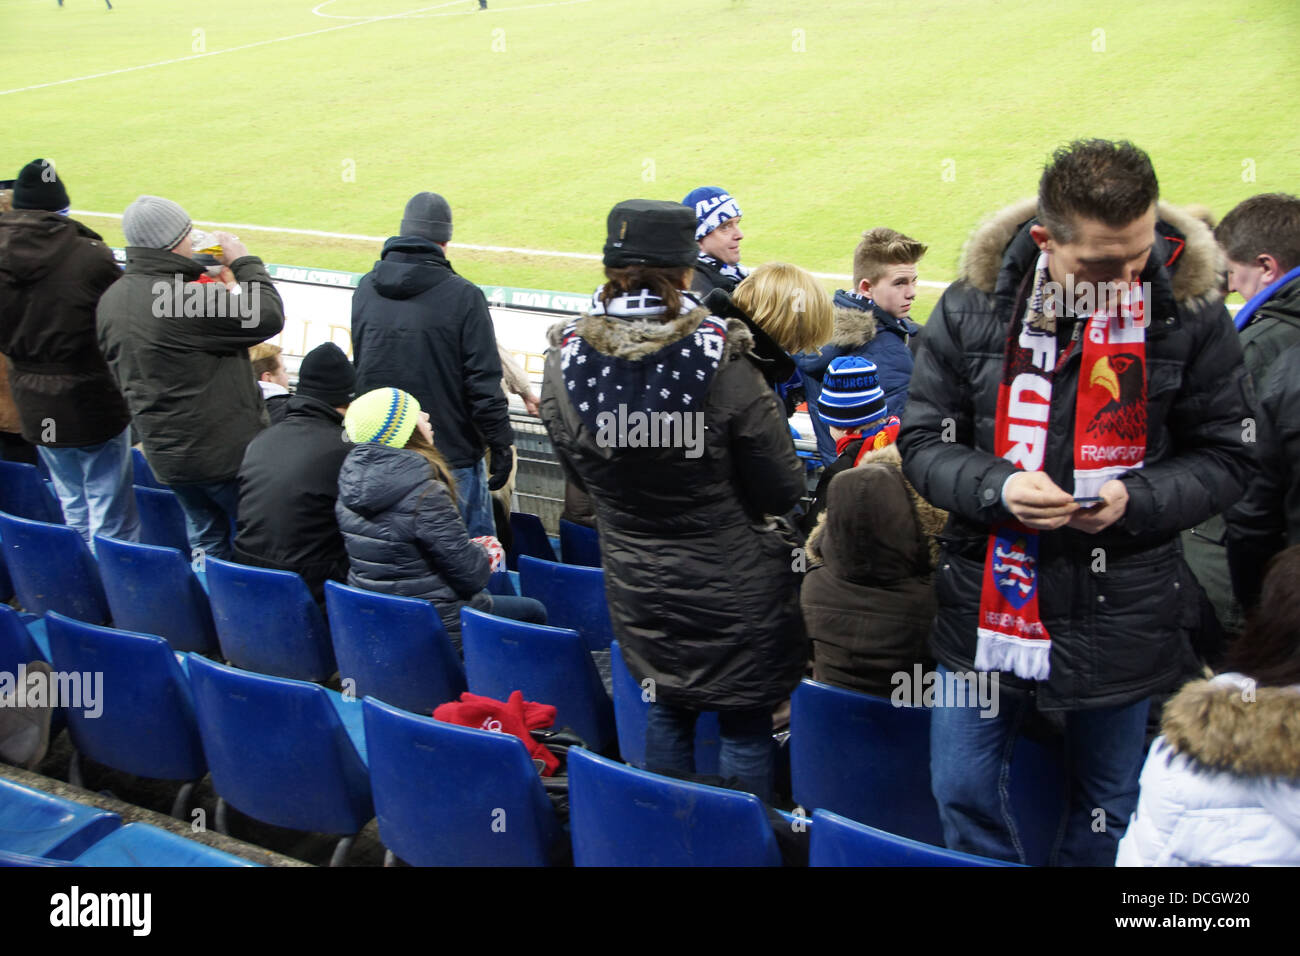 disappointed fans of the Hamburger Sport Verein HSV - Stock Image